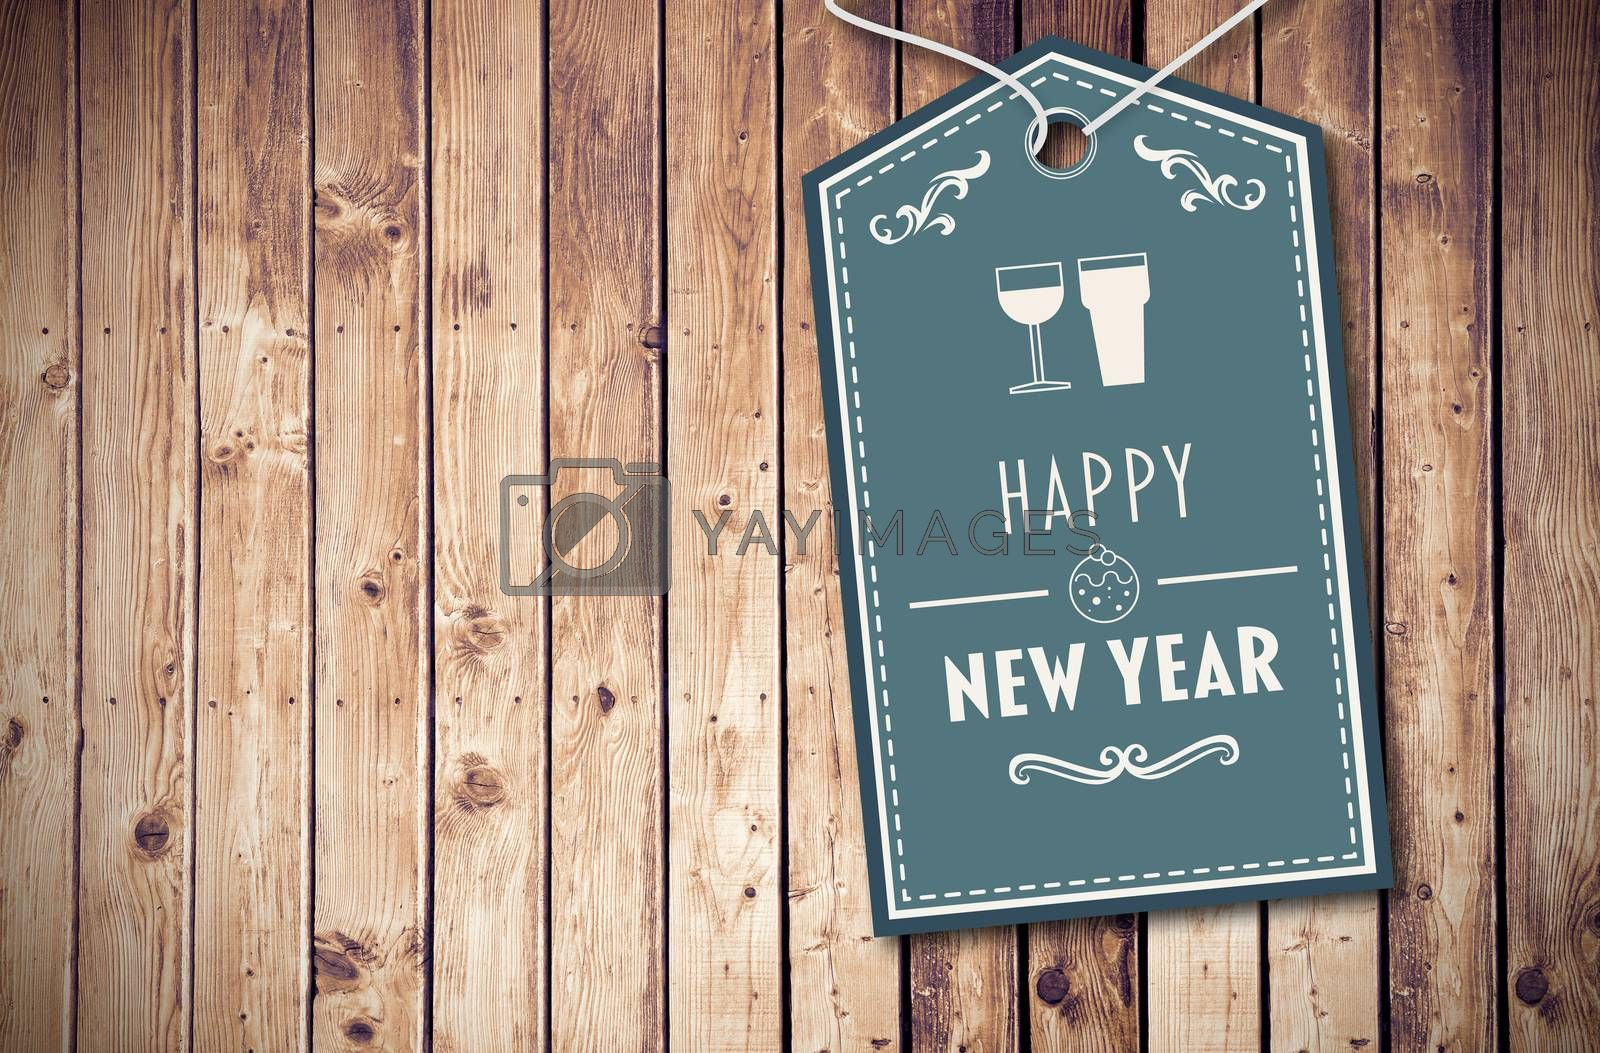 Banner saying happy new year against wooden planks background